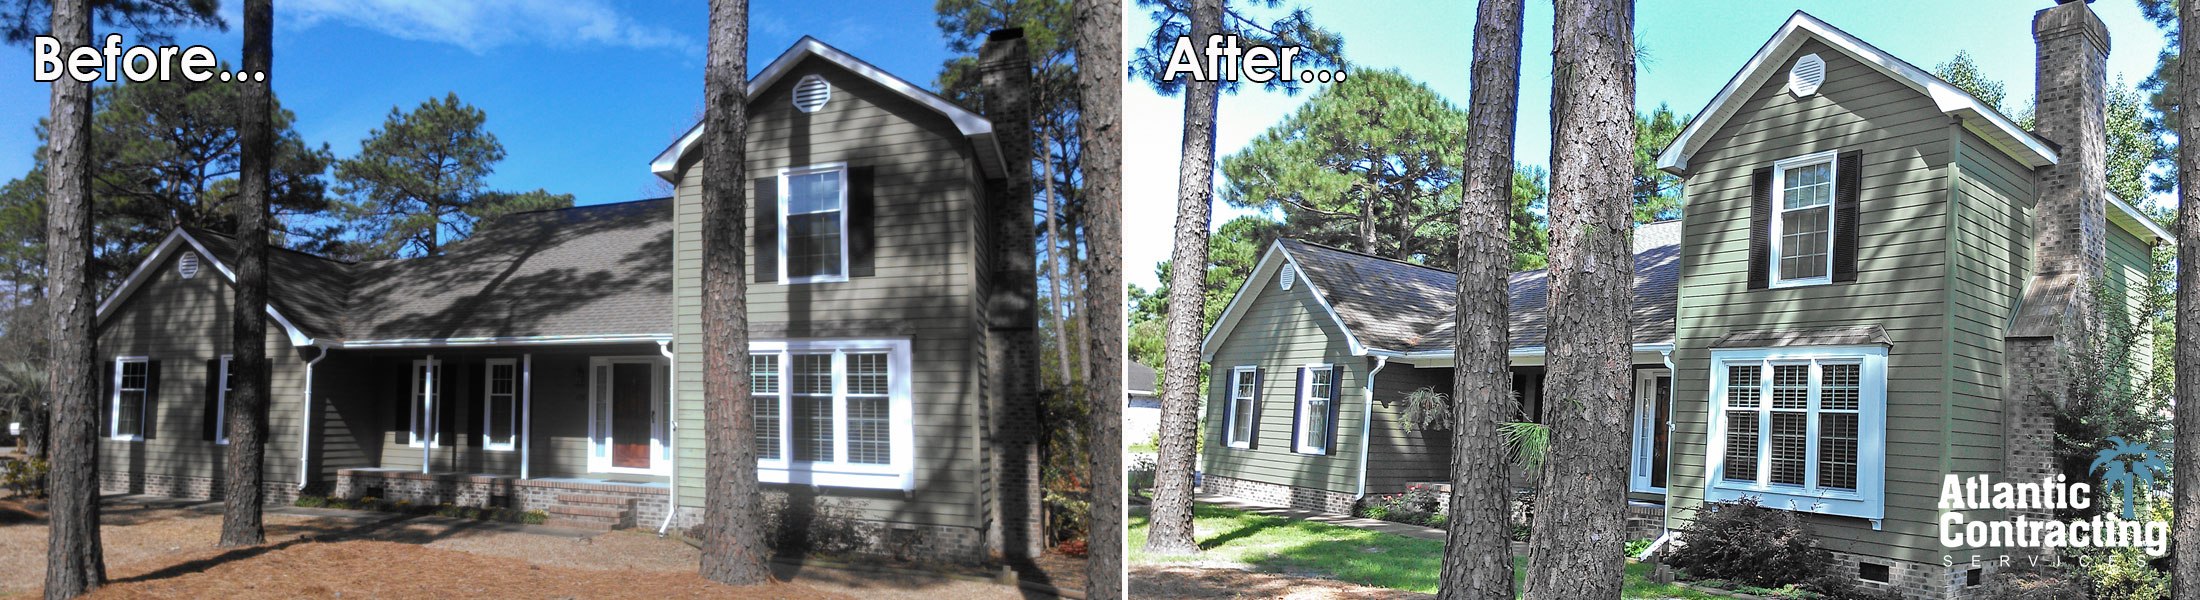 Atlantic Contracting Services, Your Conway SC Exterior Renovation Specialists